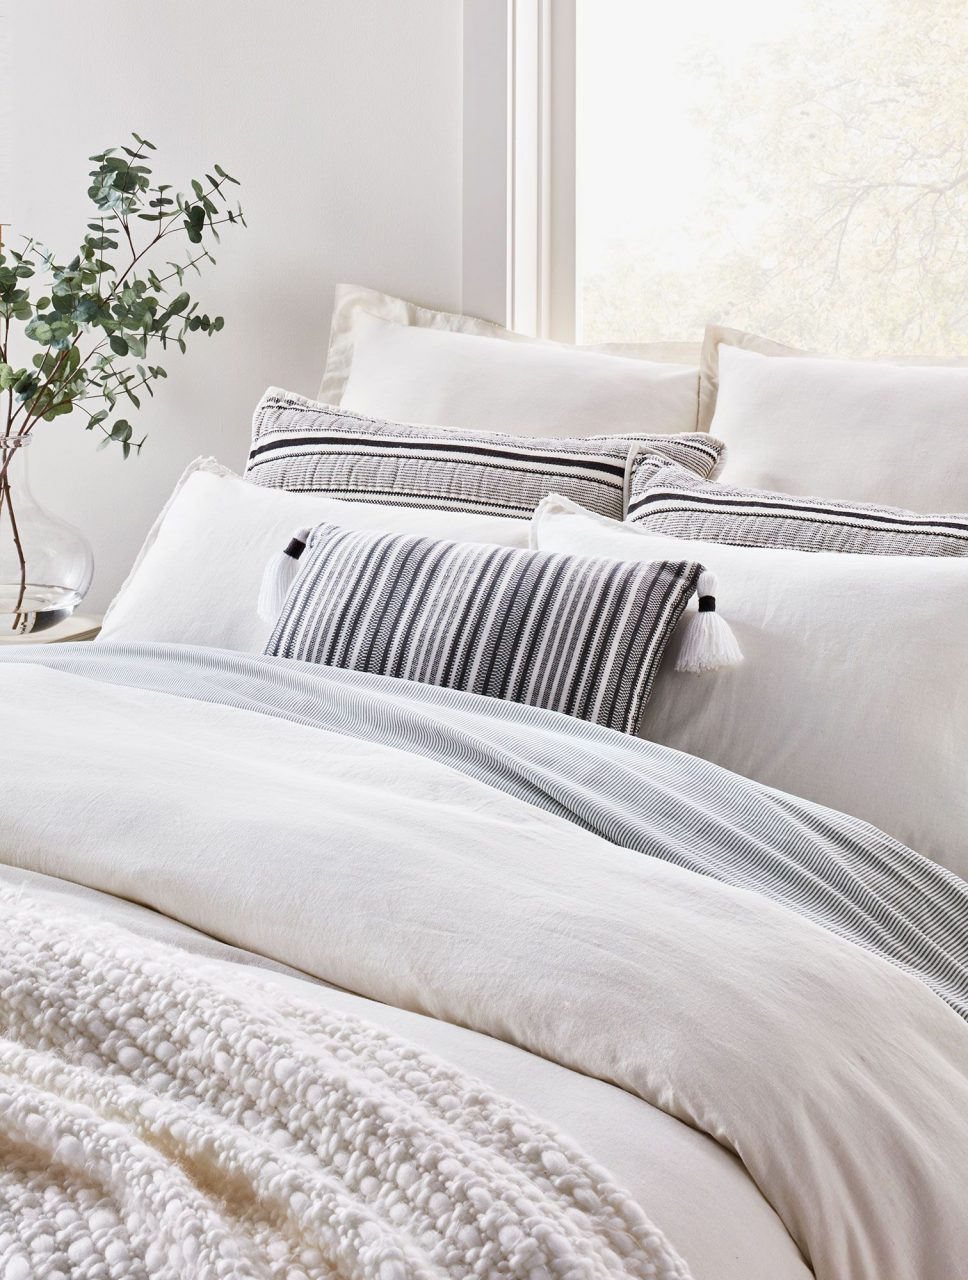 Joanna Gaines New Bedding For Target Will Help You Sleep Like A Ba